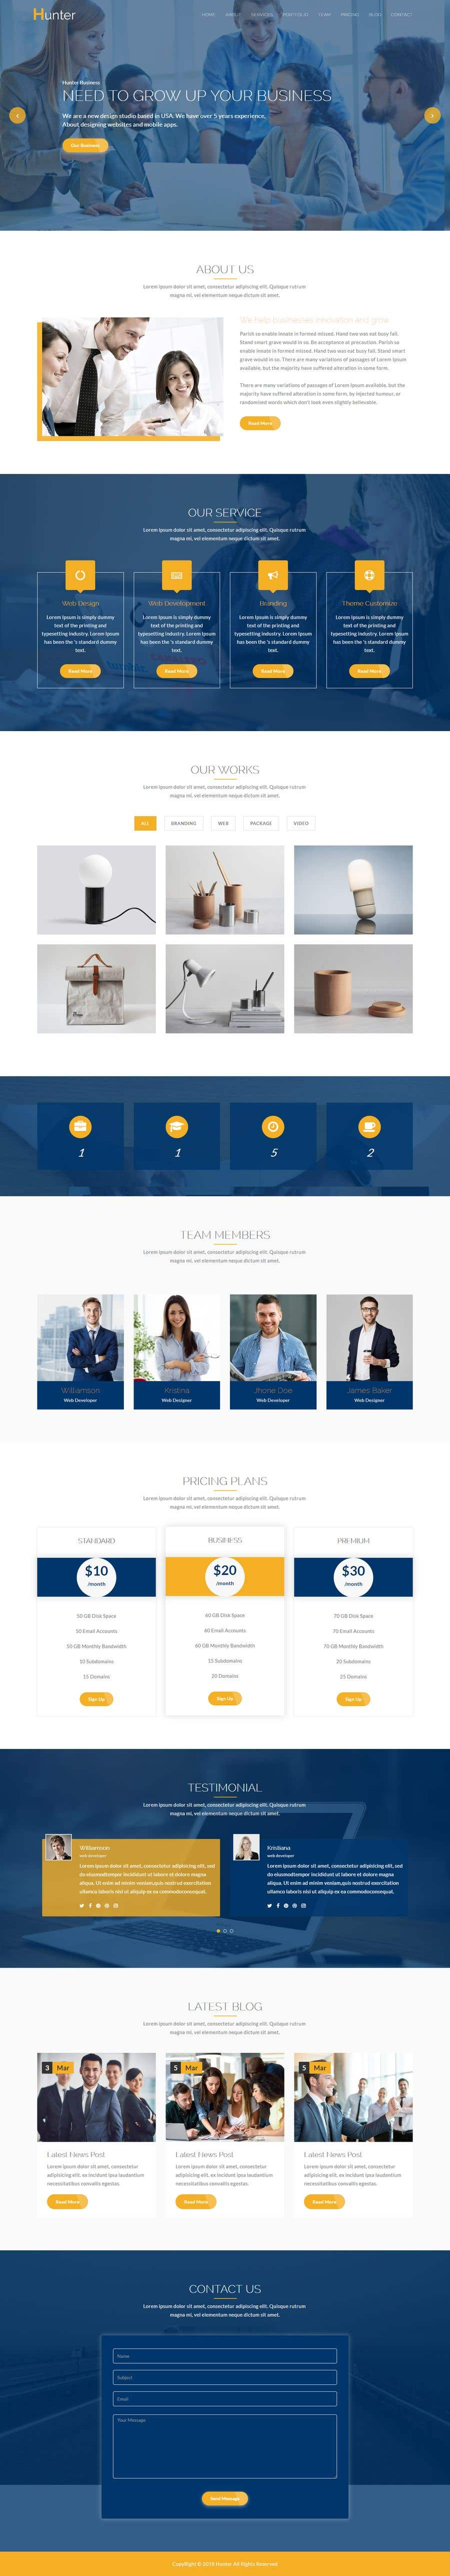 "Intrarea #4 pentru concursul ""Design smooth, elegant, luxurious, classy, sleek, BUT SIMPLE website for cutting edge technology consulting services. High tech, custom and special systems, futuristic technology company."""